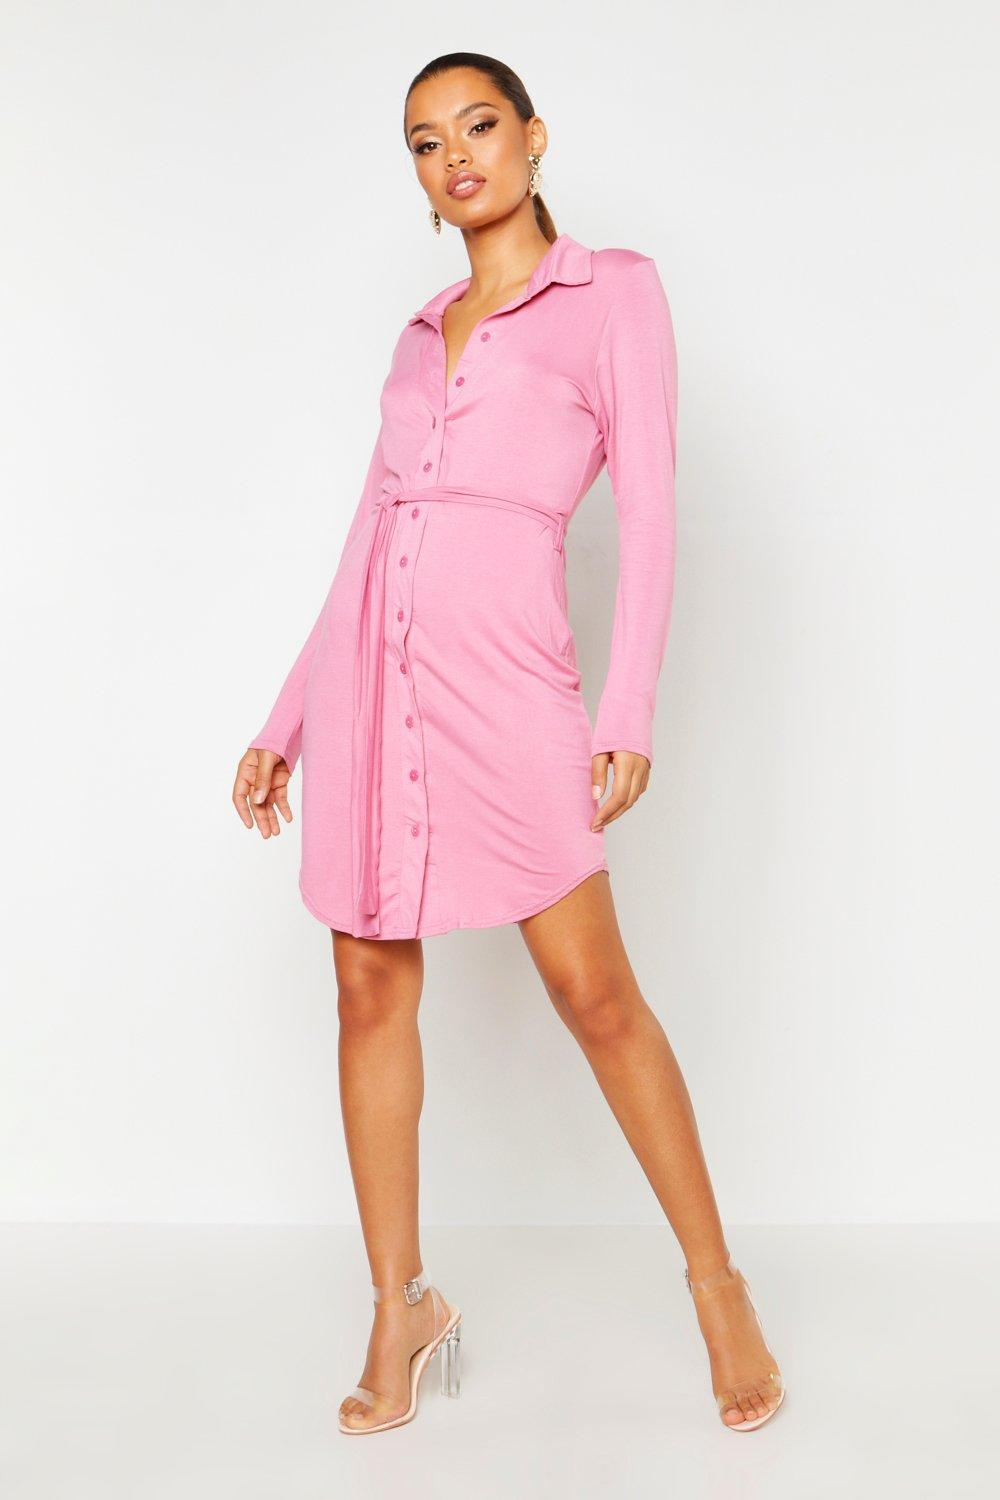 Shop our Collection of Women's shirt dress Dresses at gravitybox.ga for the Latest Designer Brands & Styles. FREE SHIPPING AVAILABLE!